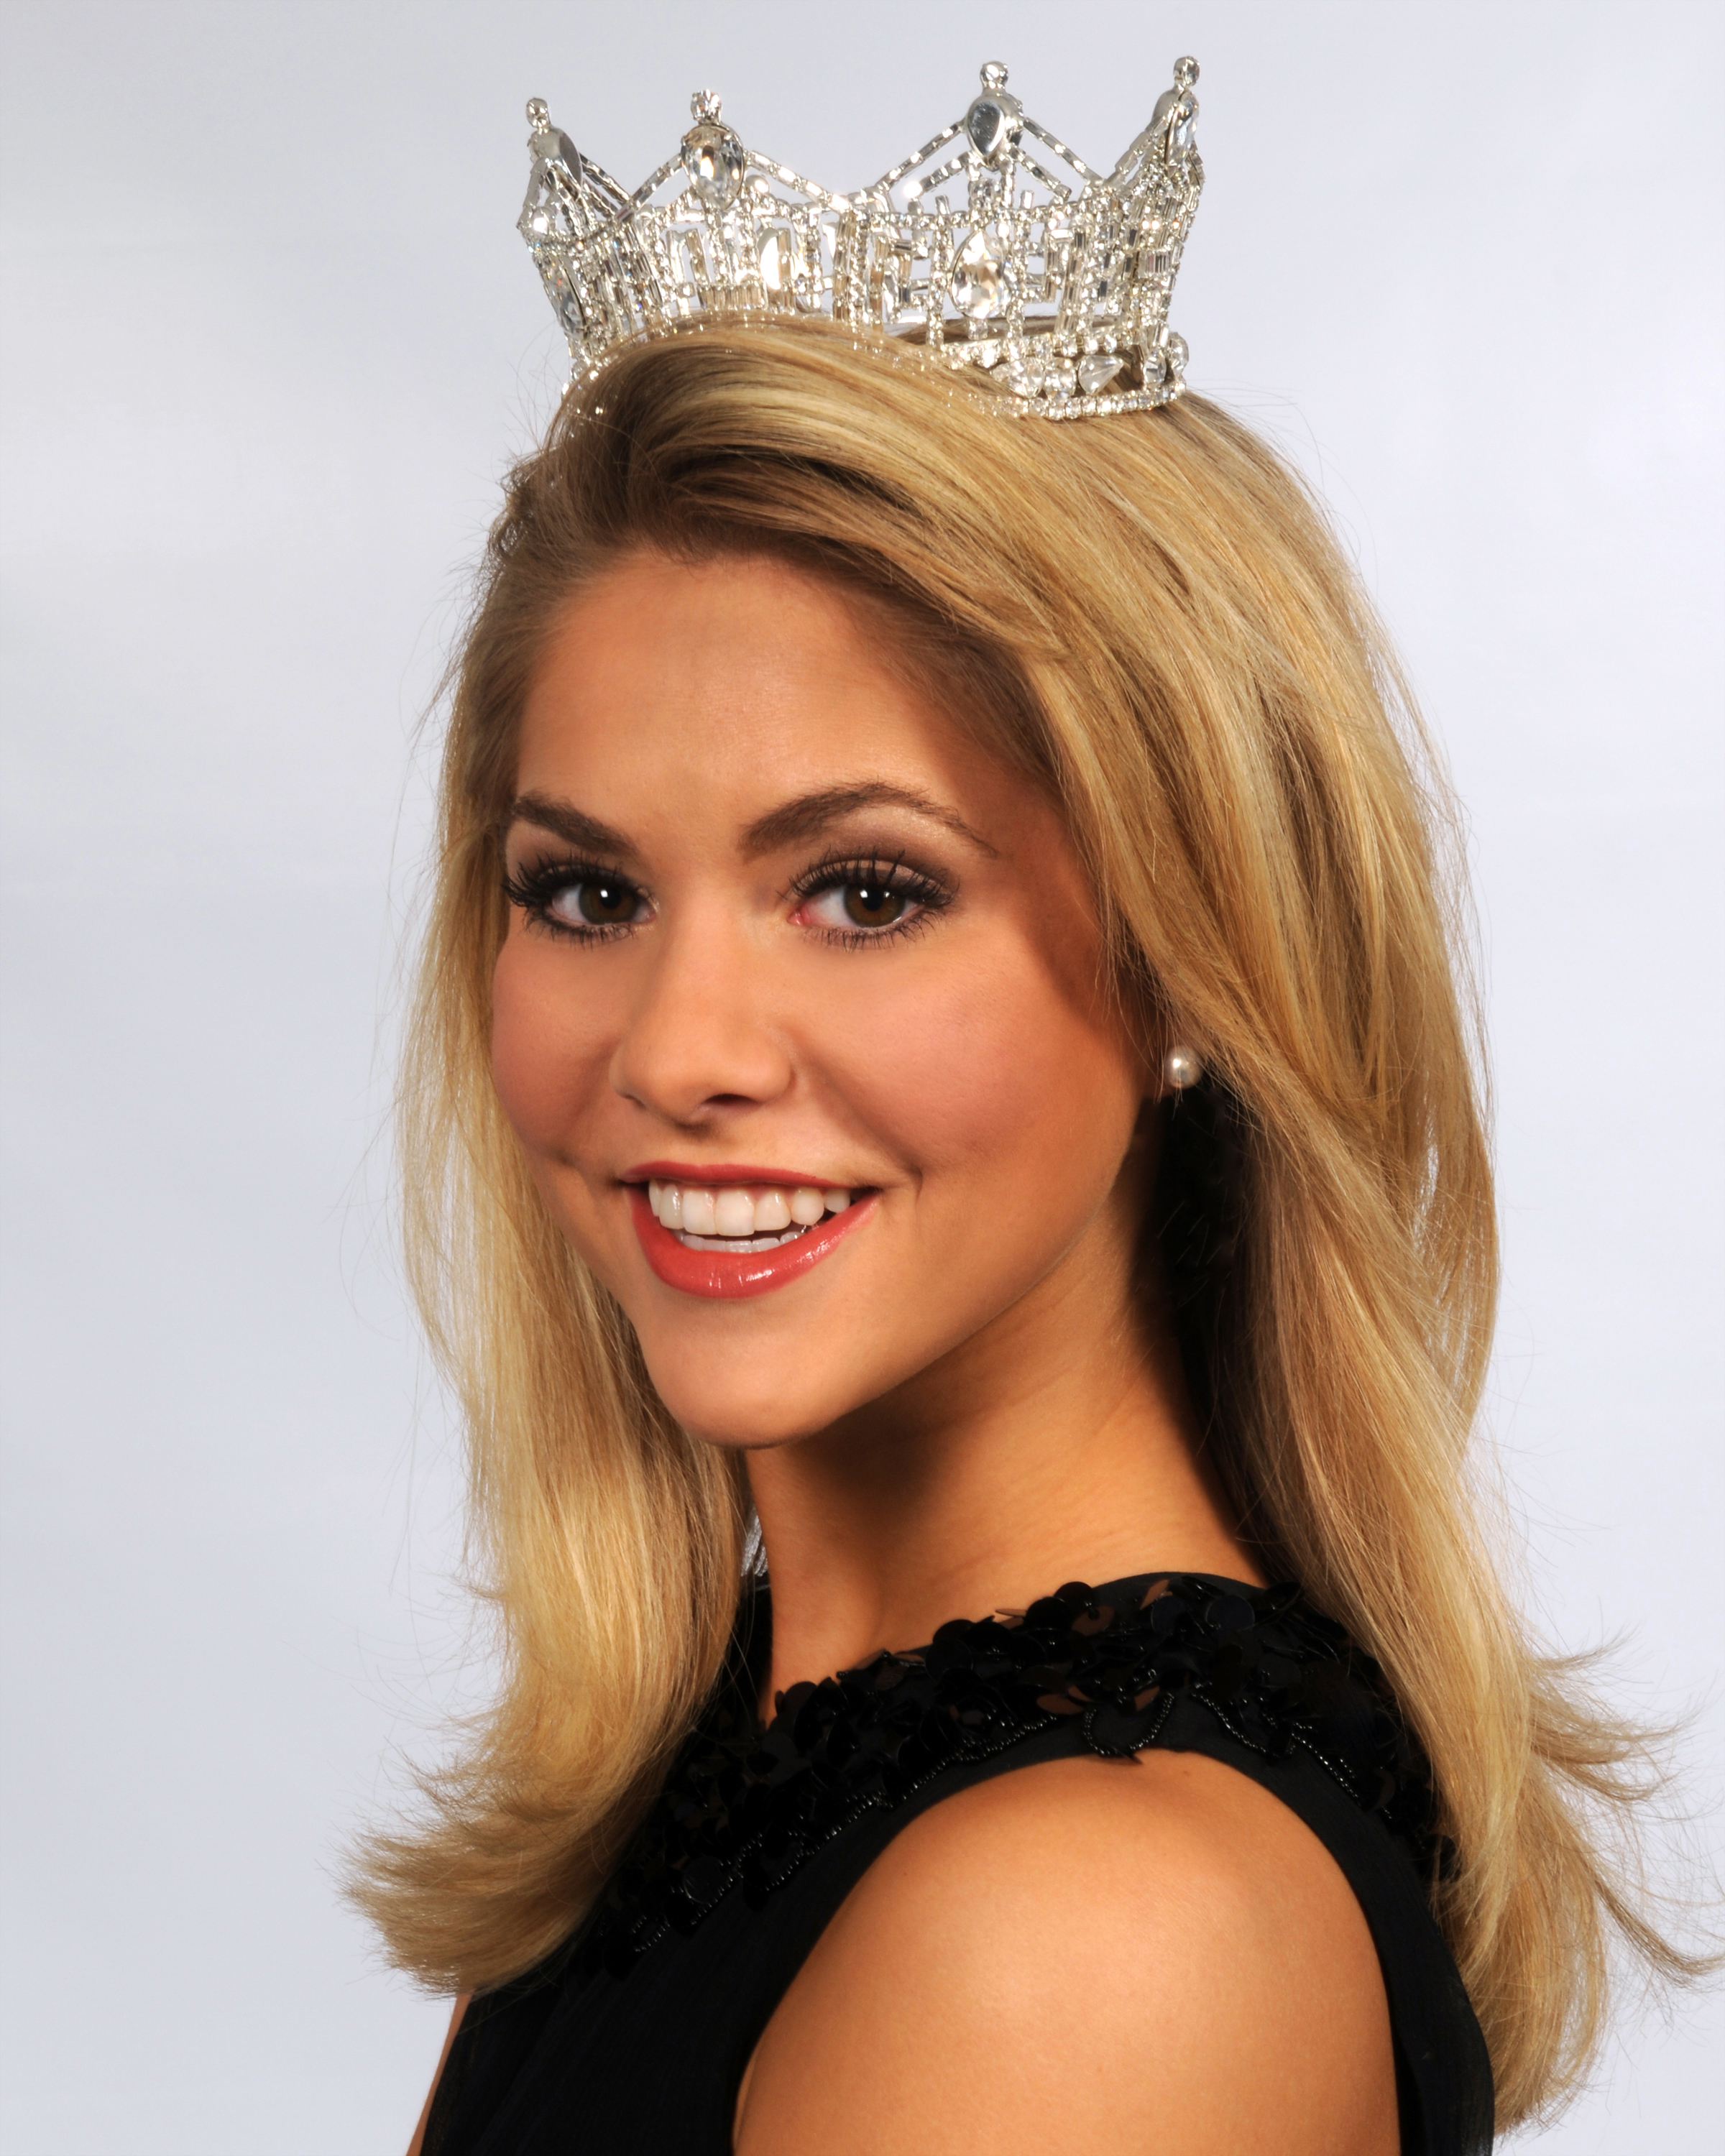 Miss America 2008 Kirsten Haglund To Appear At The NABEF